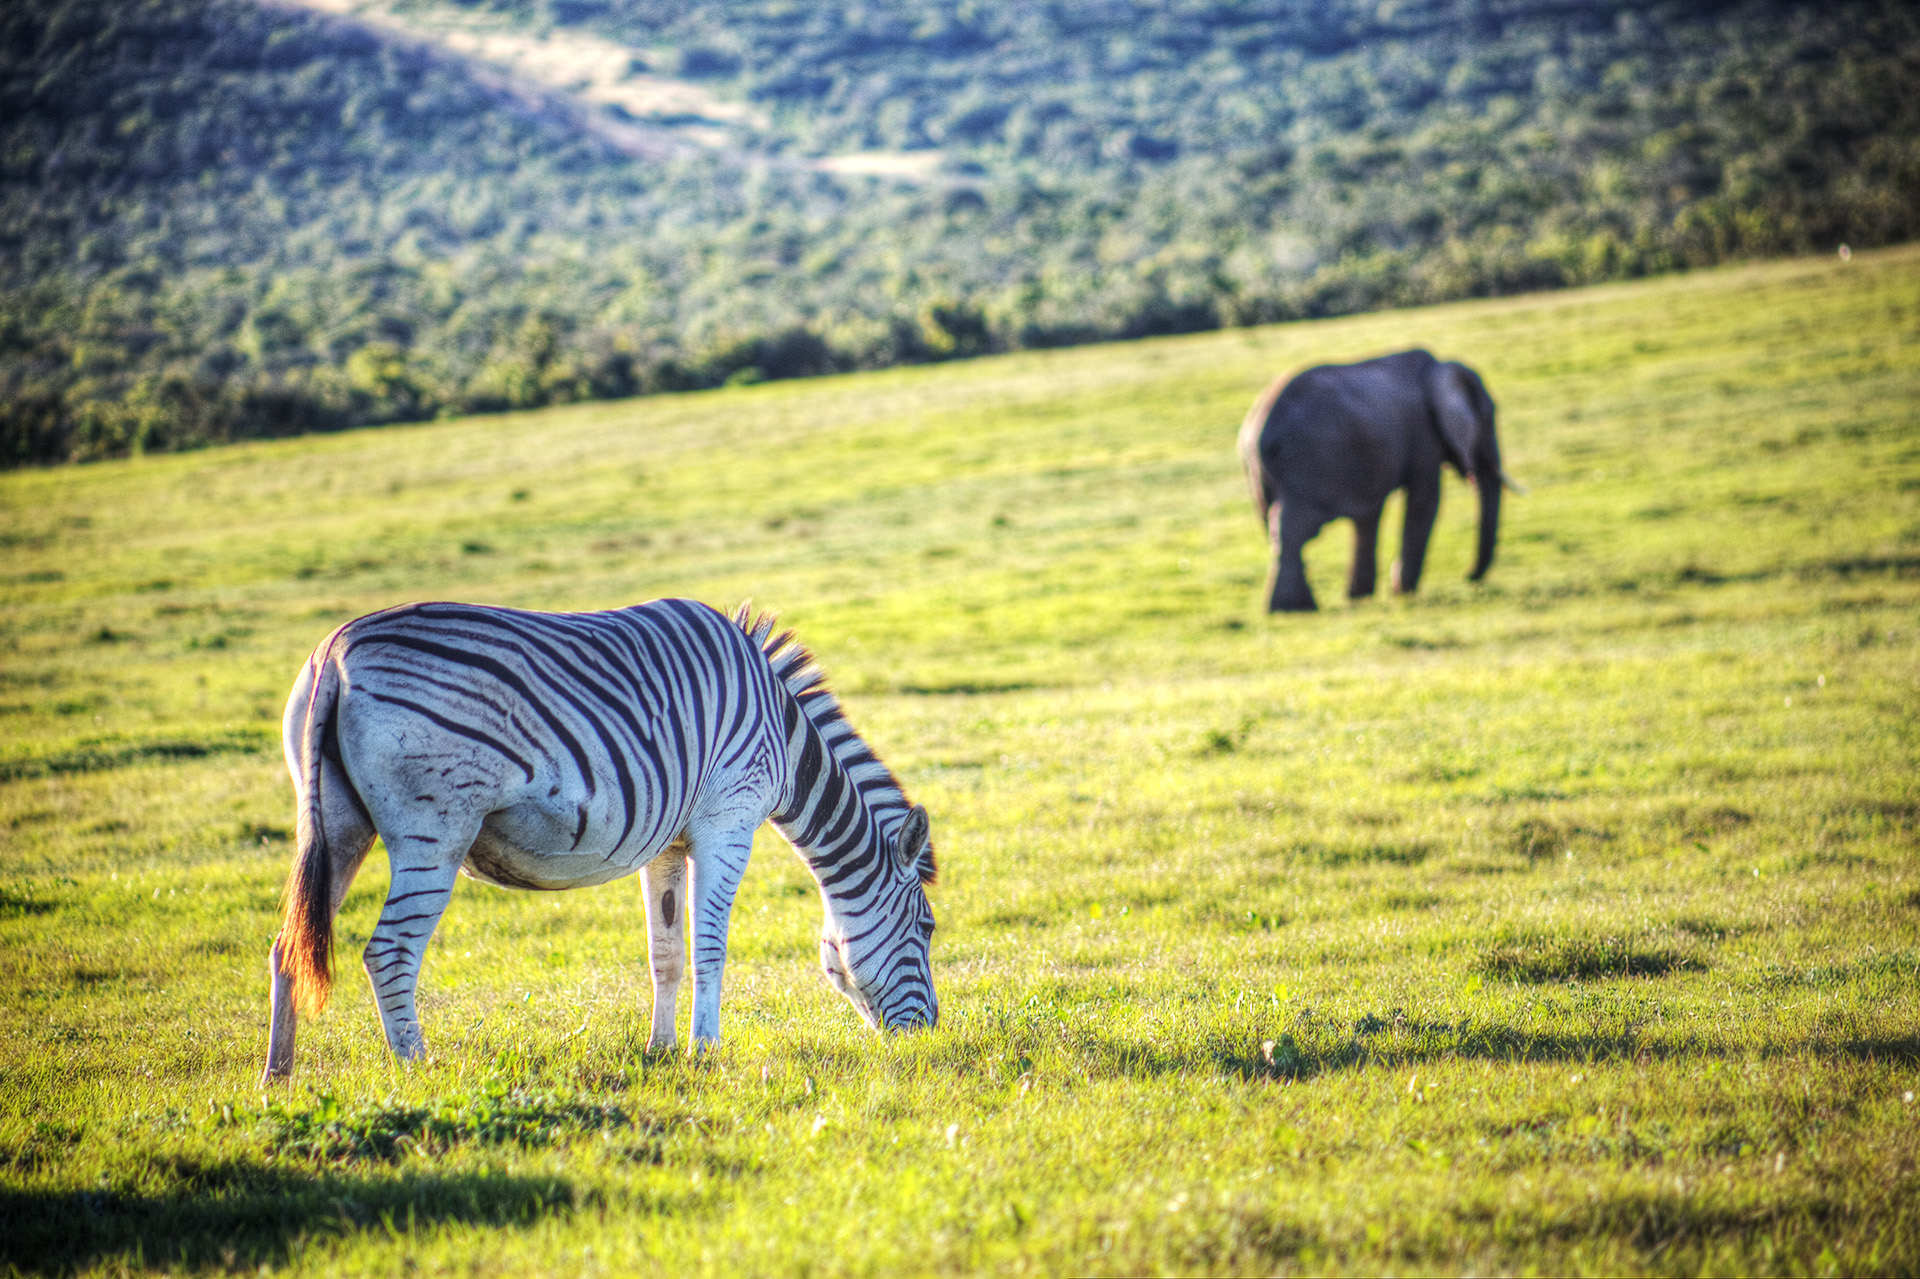 A zebra and elephant sharing the grasslands.